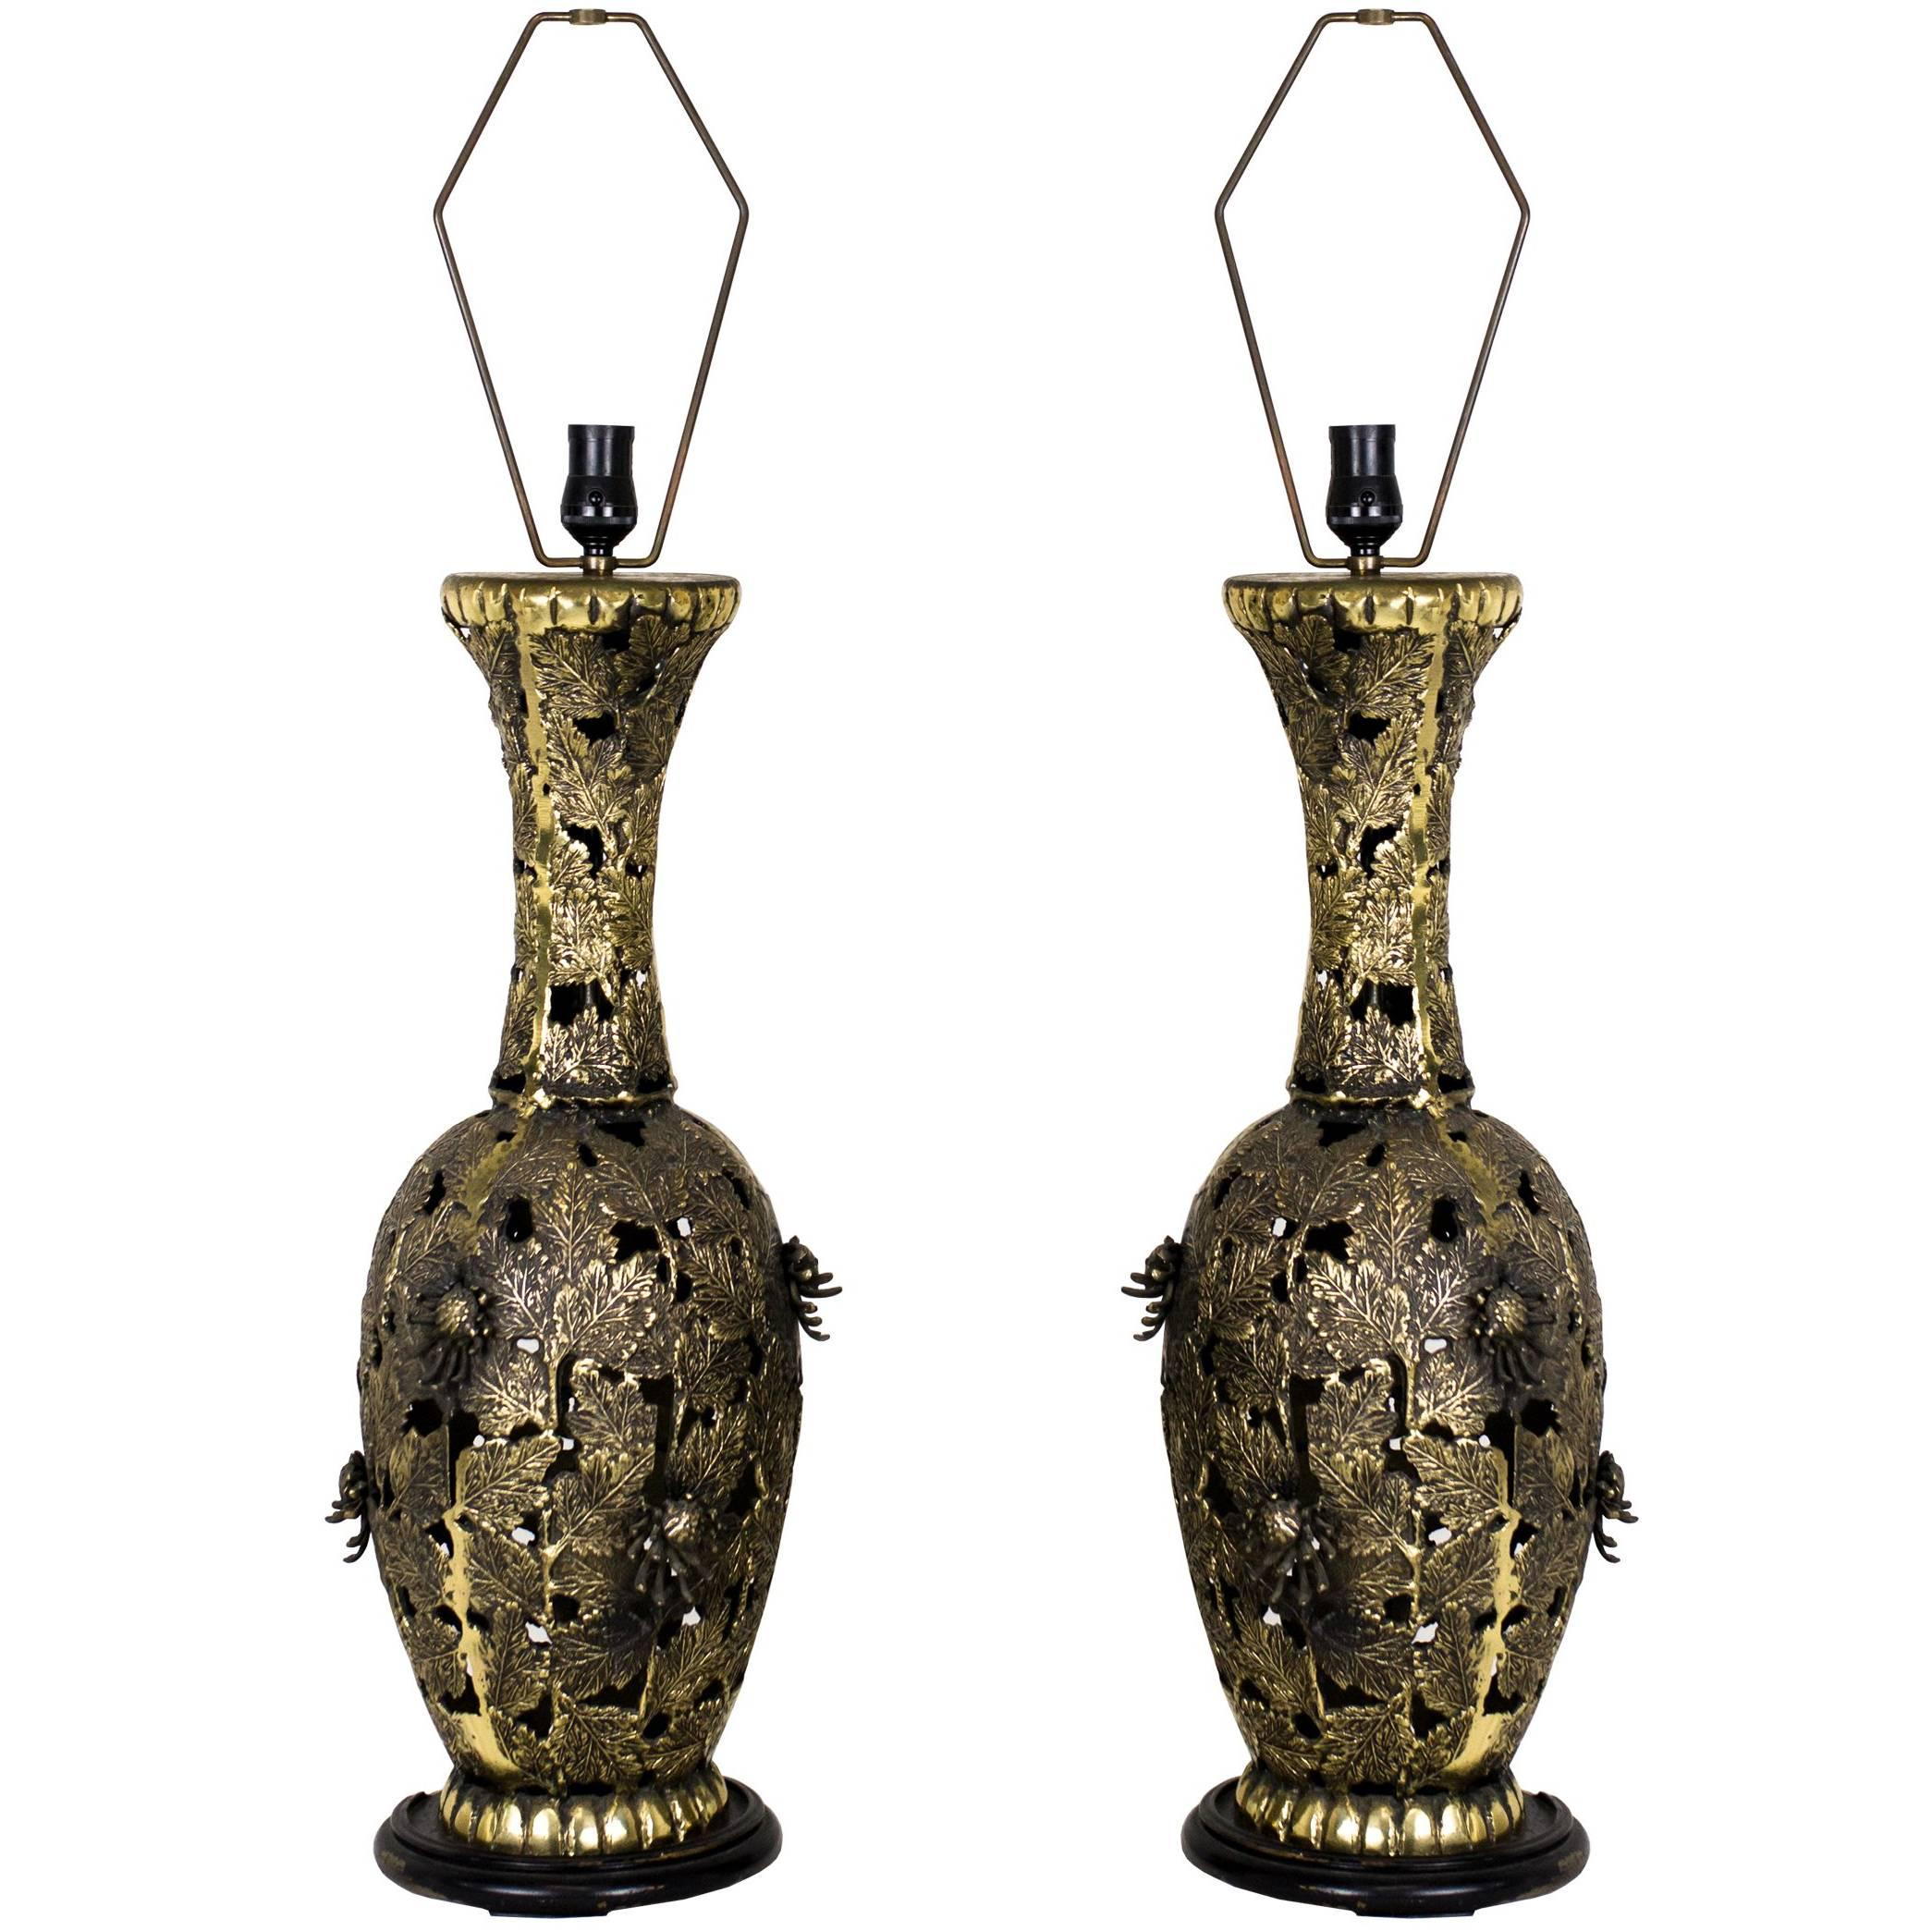 Pair of Bronze Brutalist Style Pierced Table Lamps